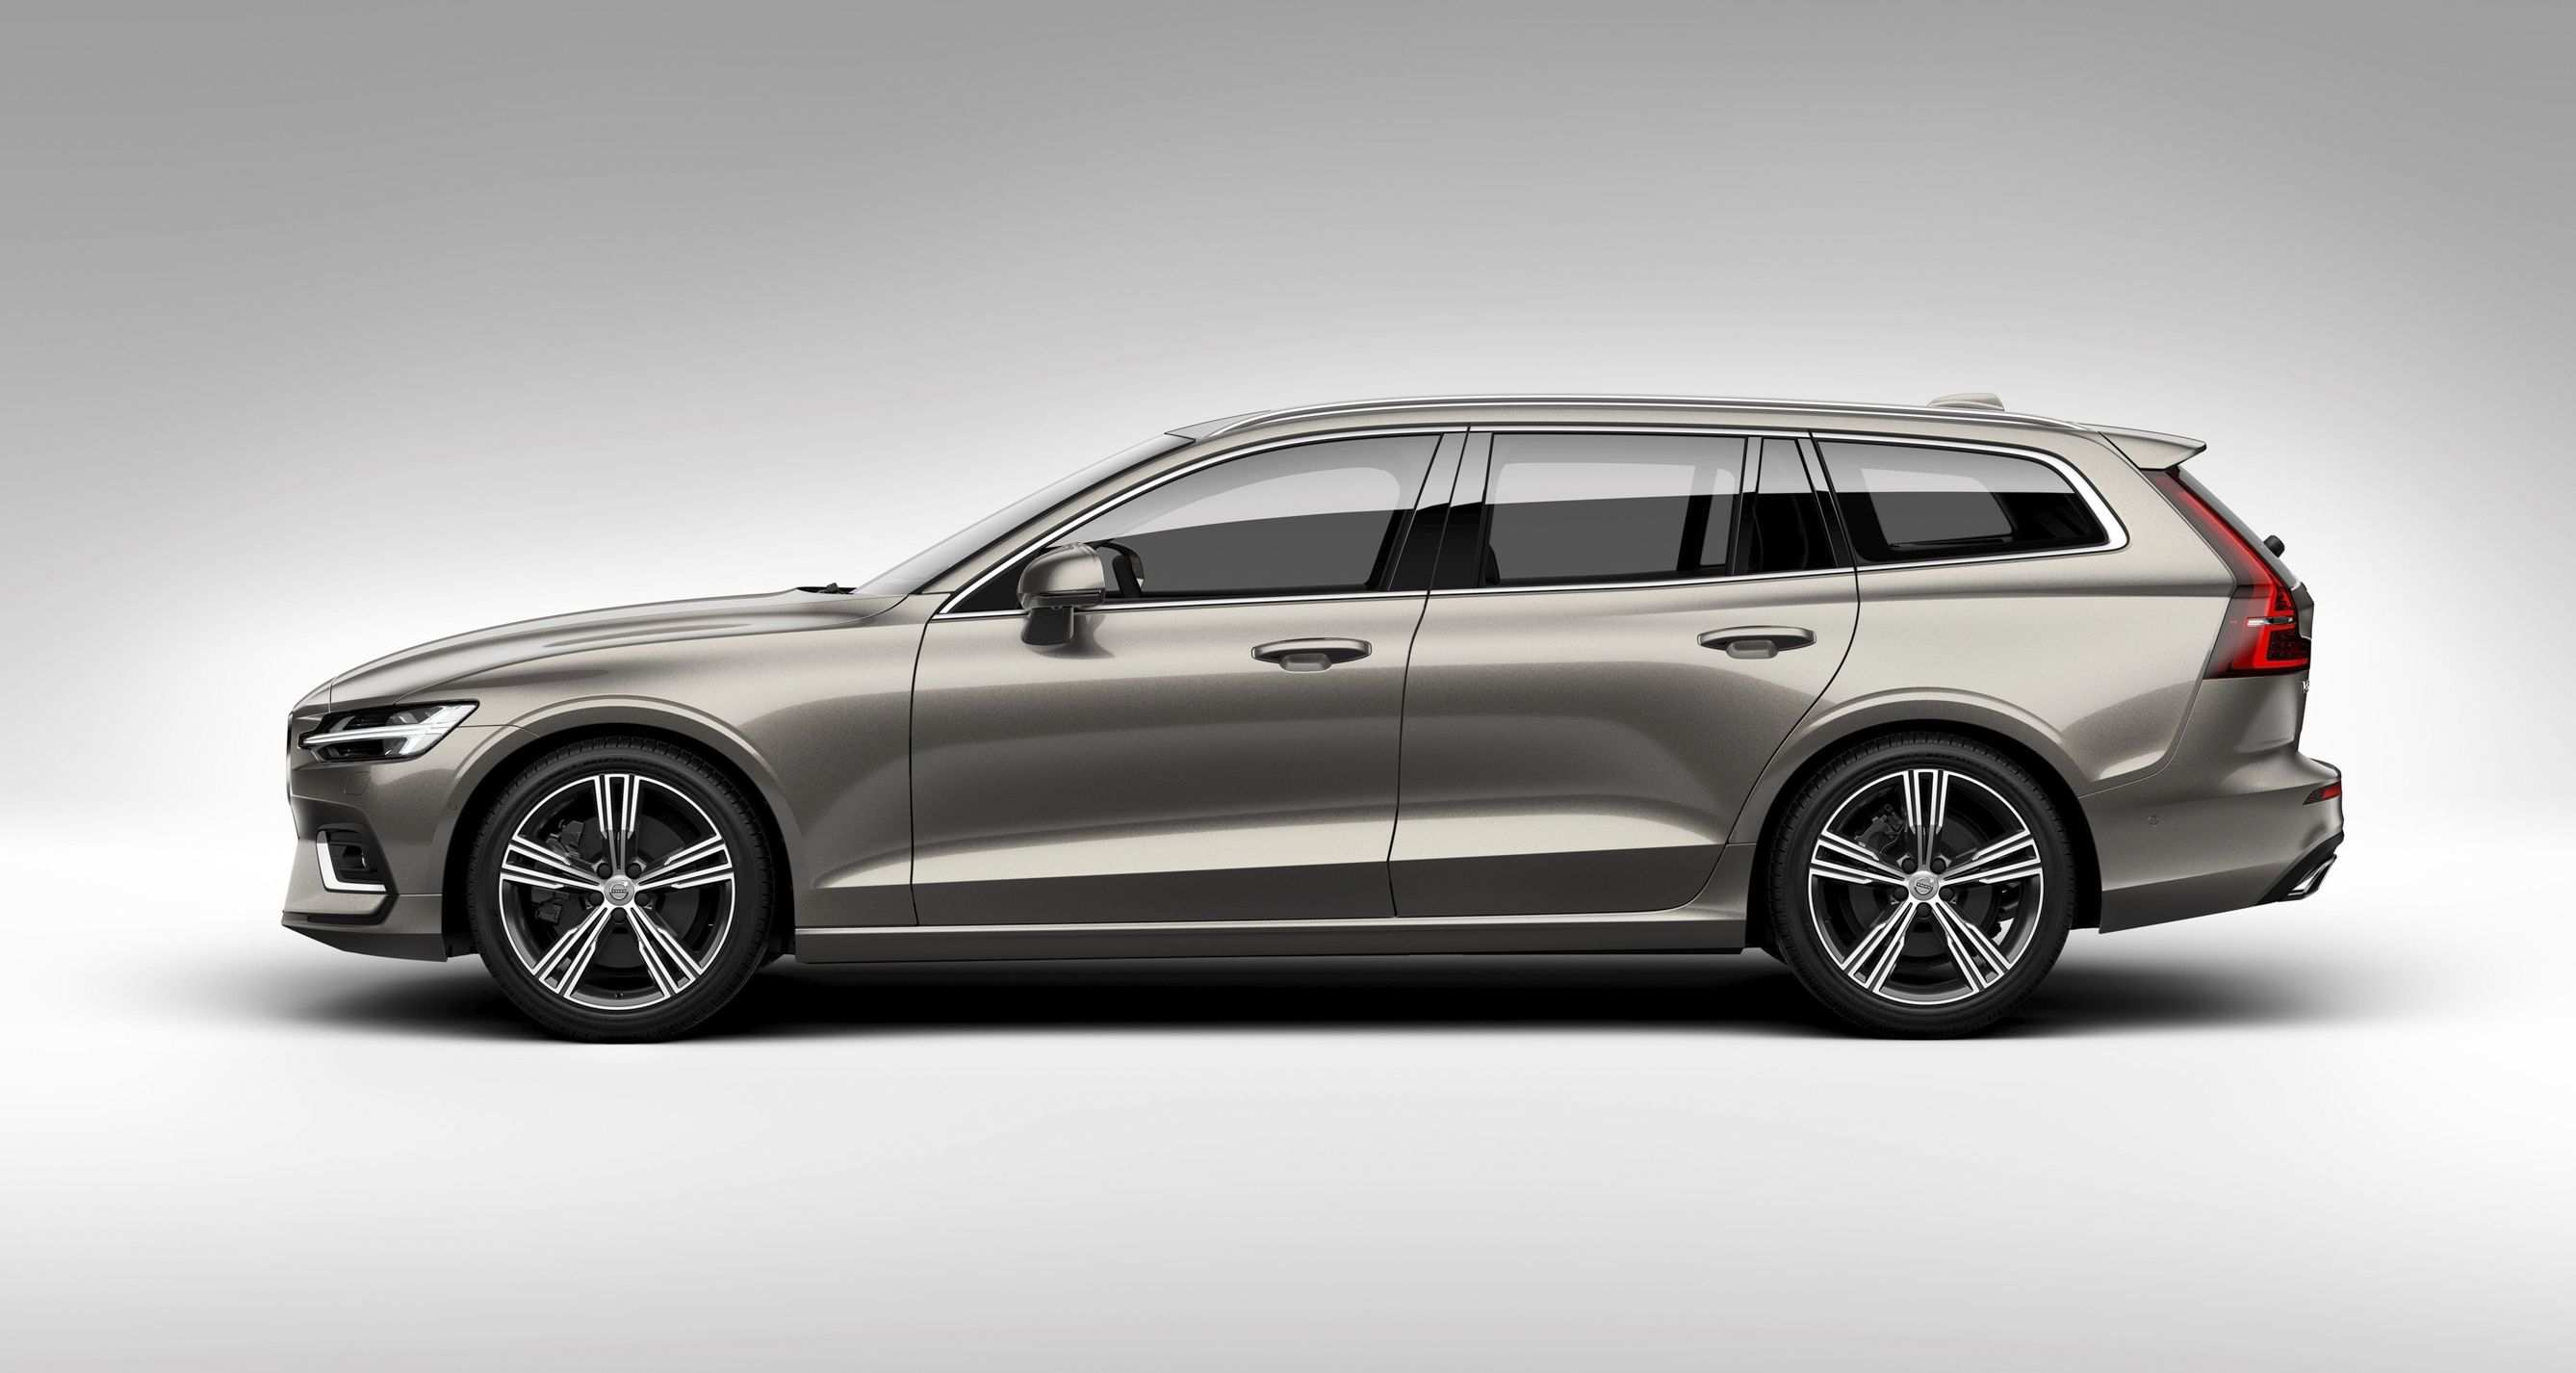 82 Gallery of 2019 Volvo Station Wagon Configurations with 2019 Volvo Station Wagon